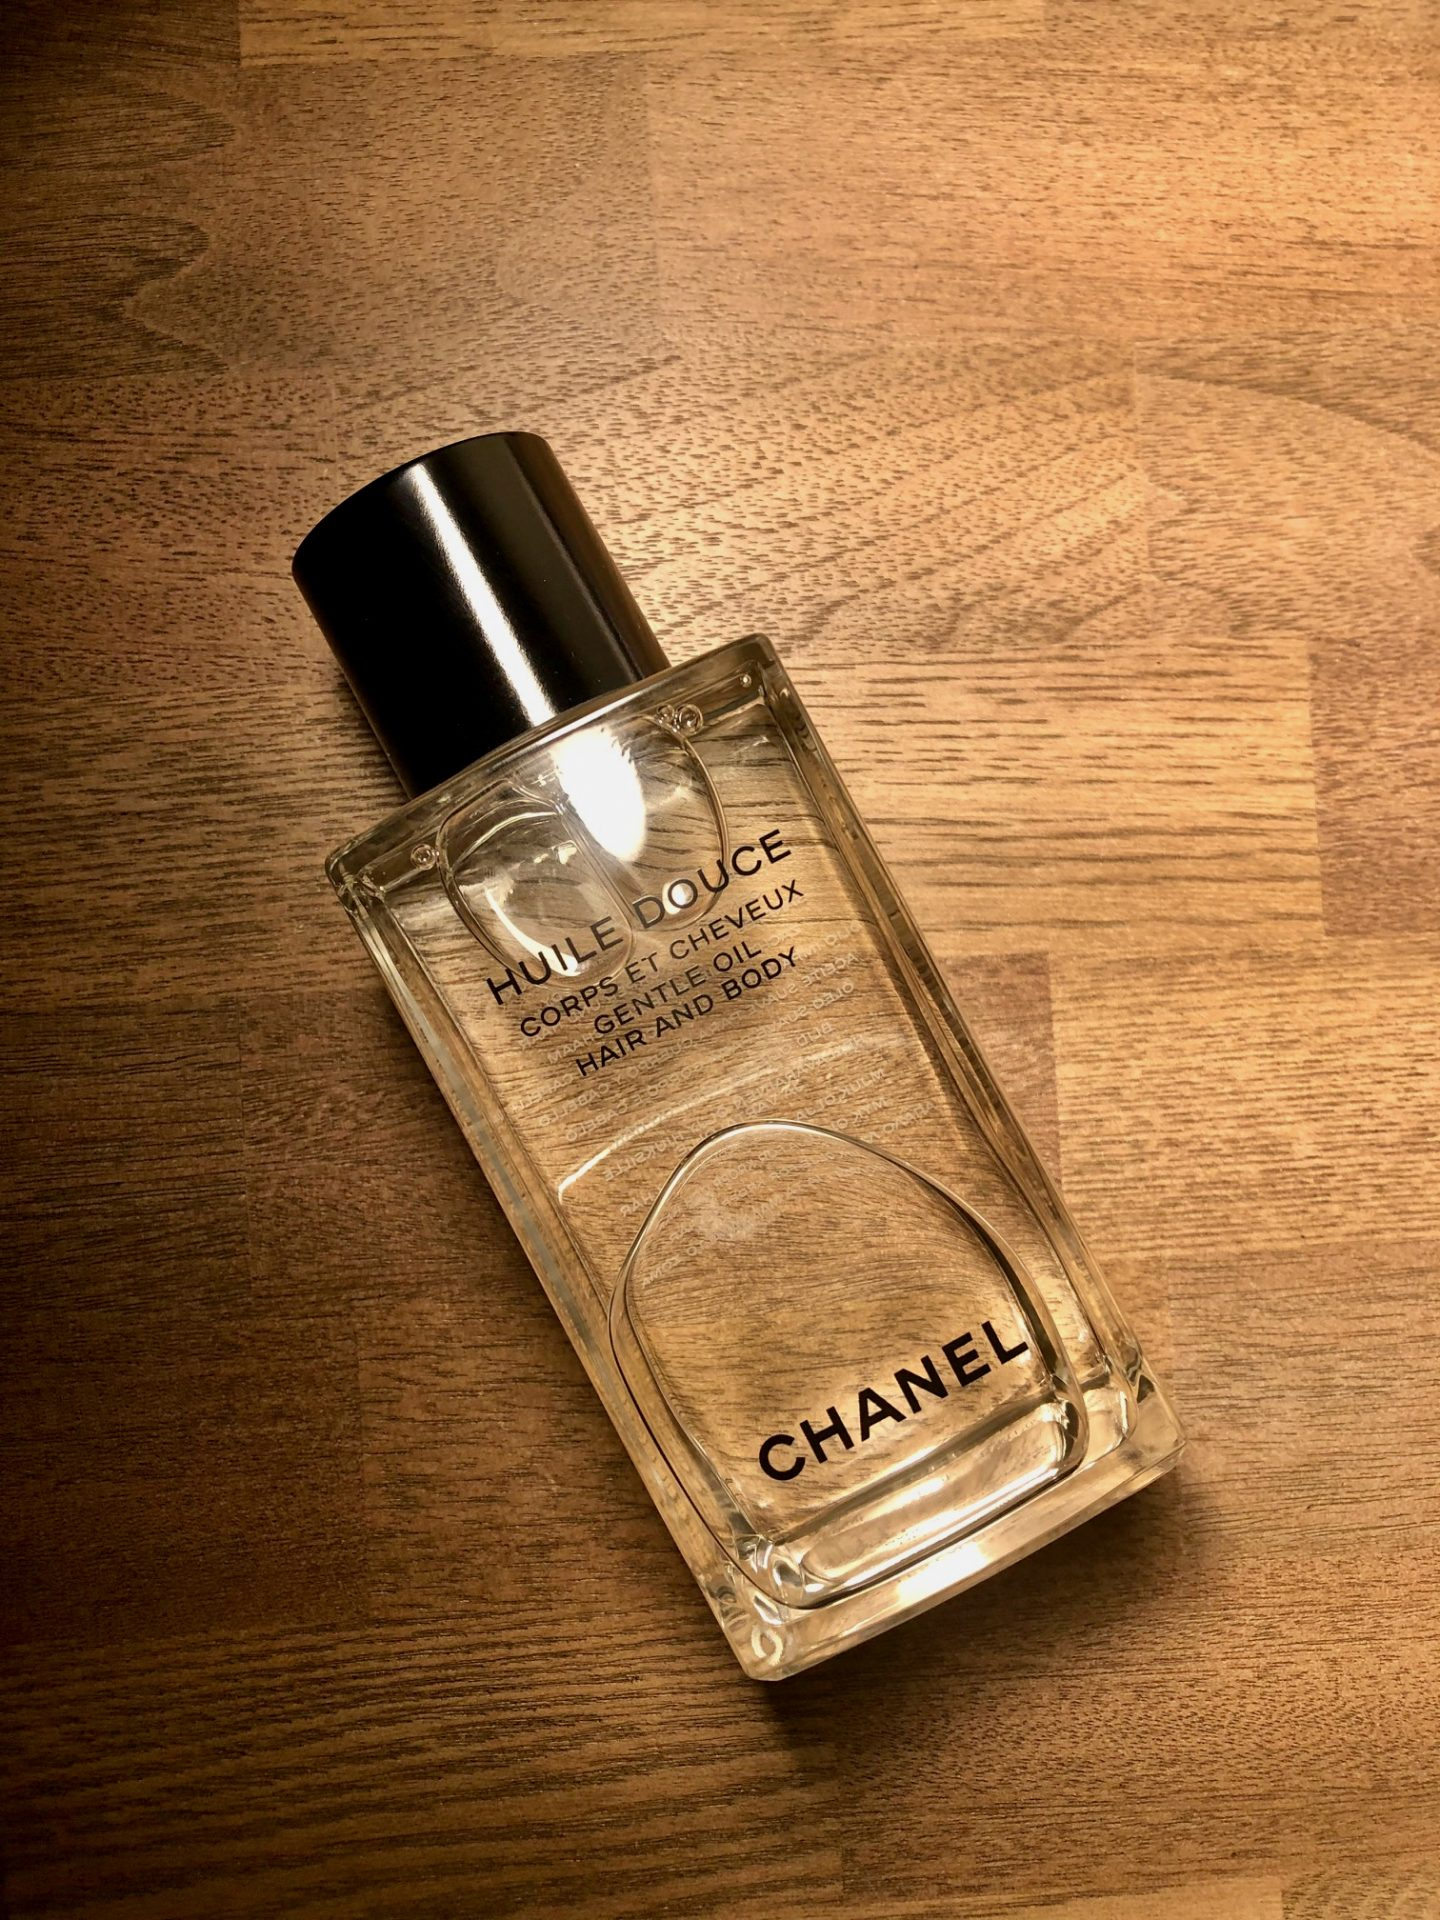 First Impressions- CHANEL'S EXCLUSIVES – GENTLE HAIR AND BODY OIL